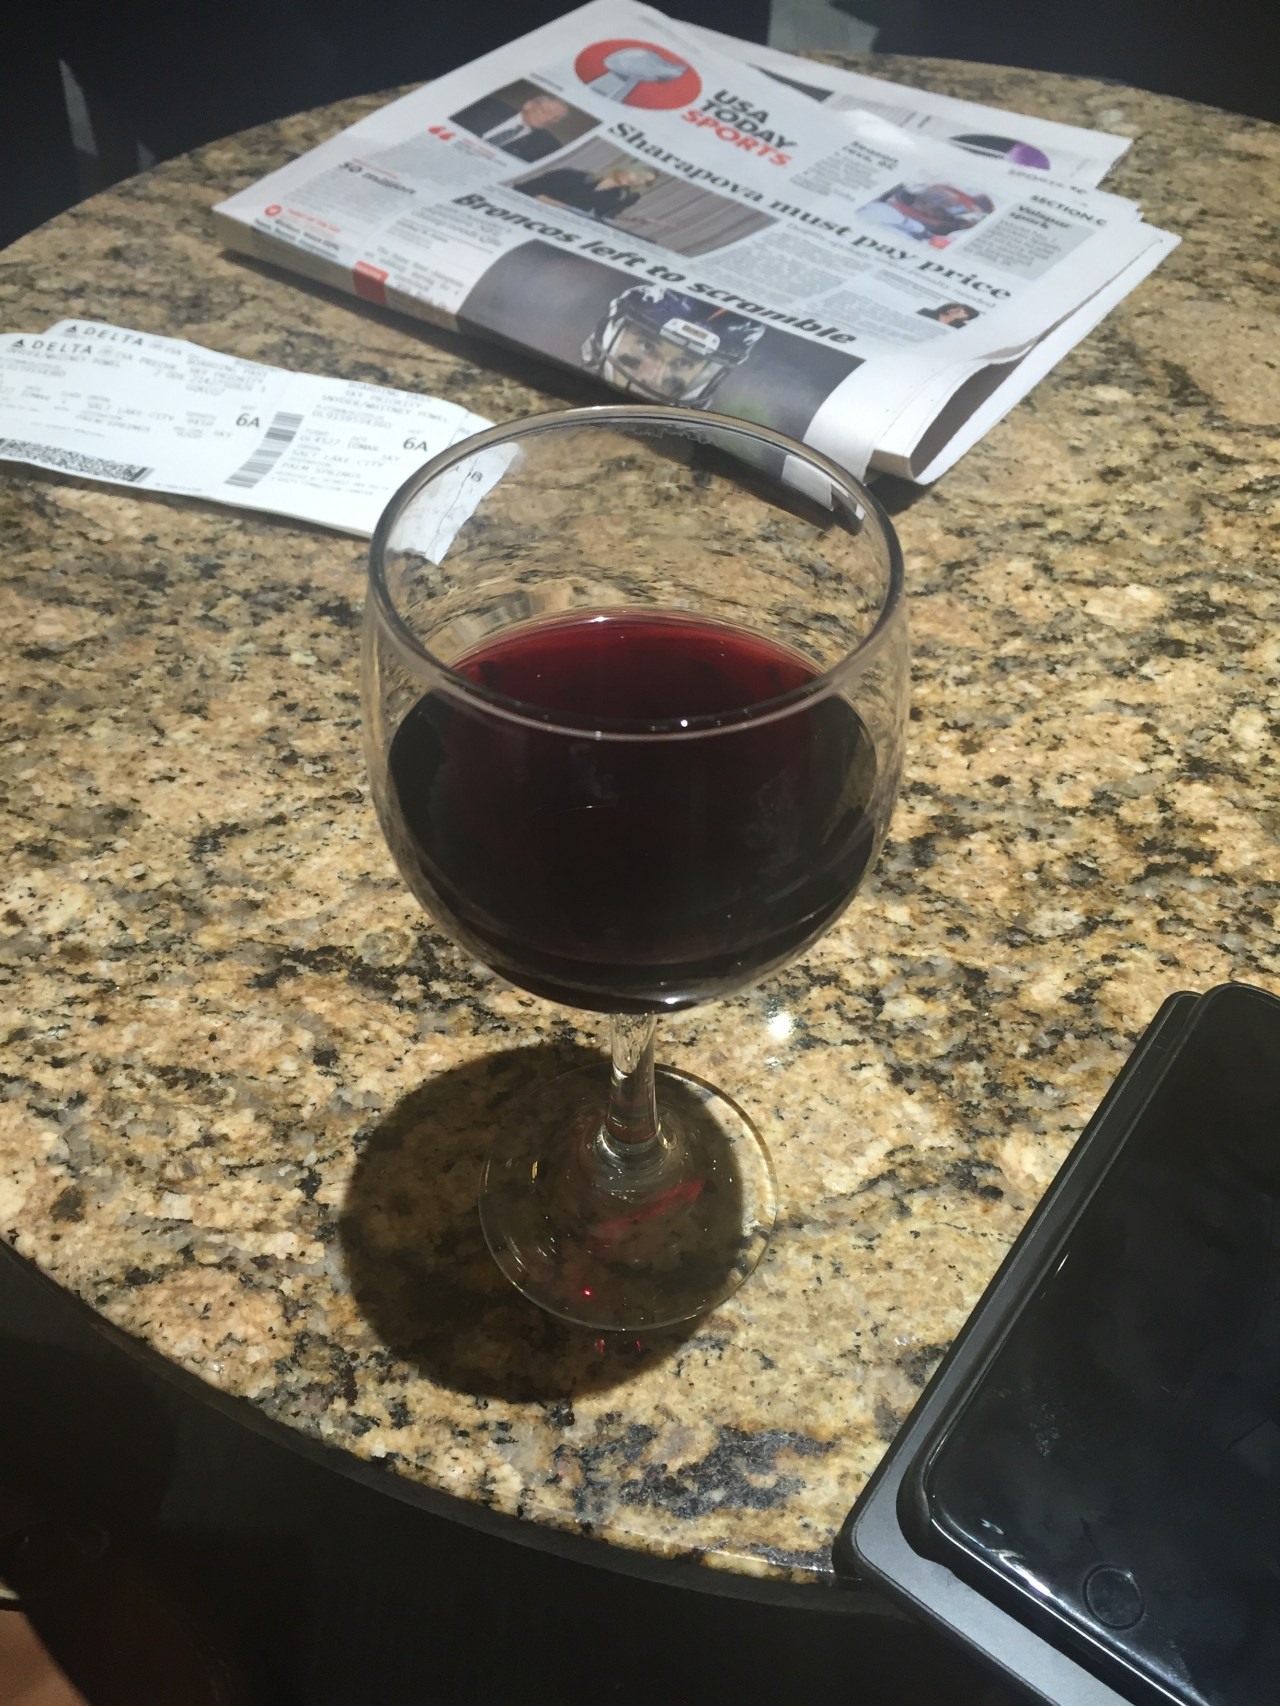 Nine Hours, a Republican Debate, and Plenty of Booze in the Salt Lake City Airport